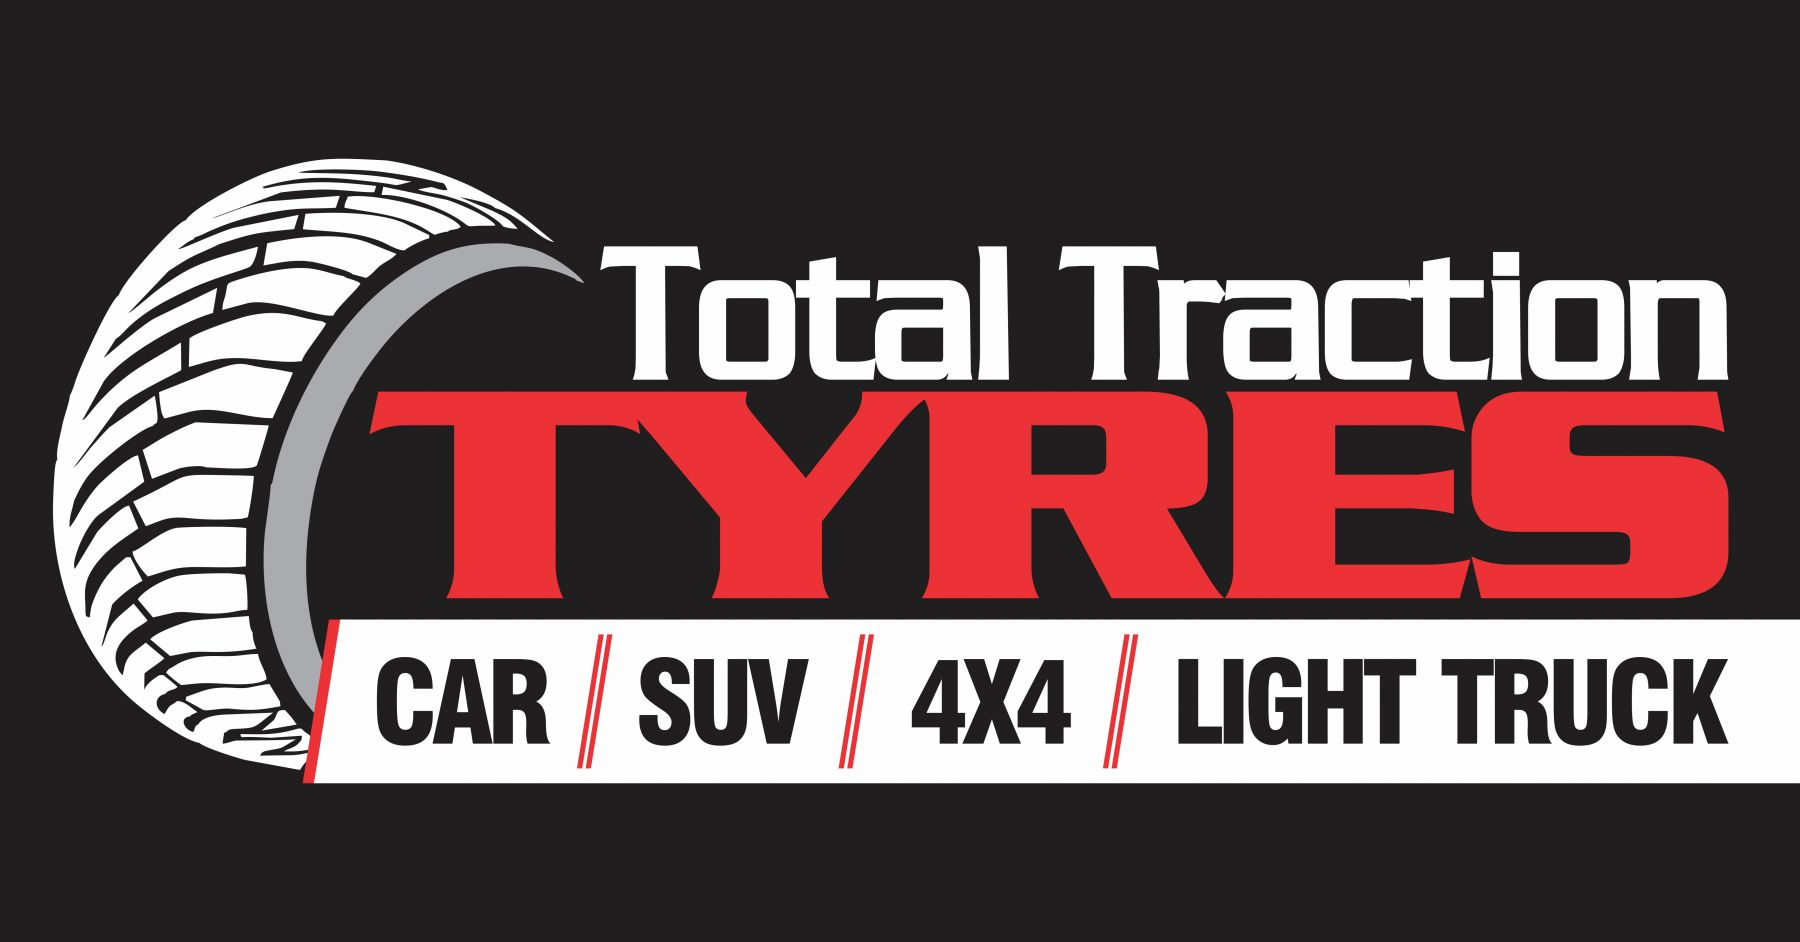 Total-Traction-Tyres